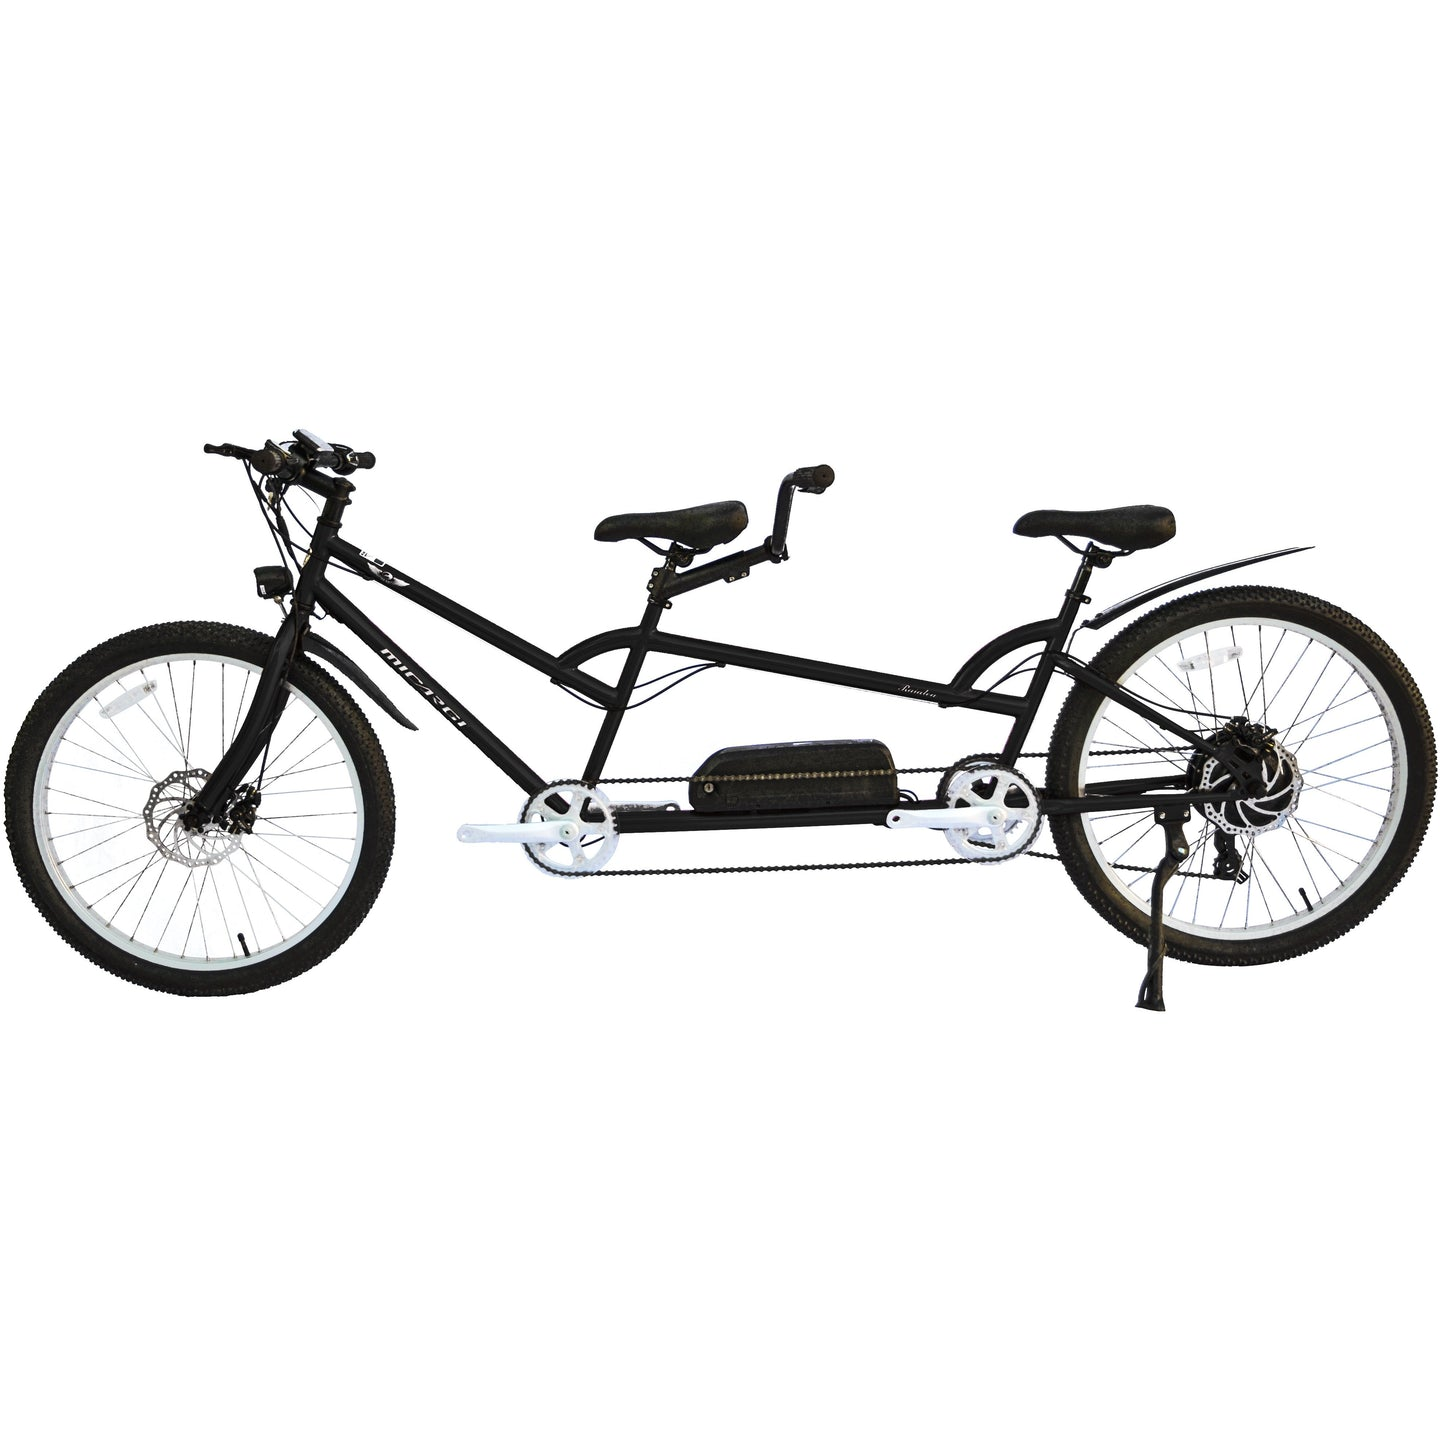 Micargi Raiatea Tandem Electric Bicycle